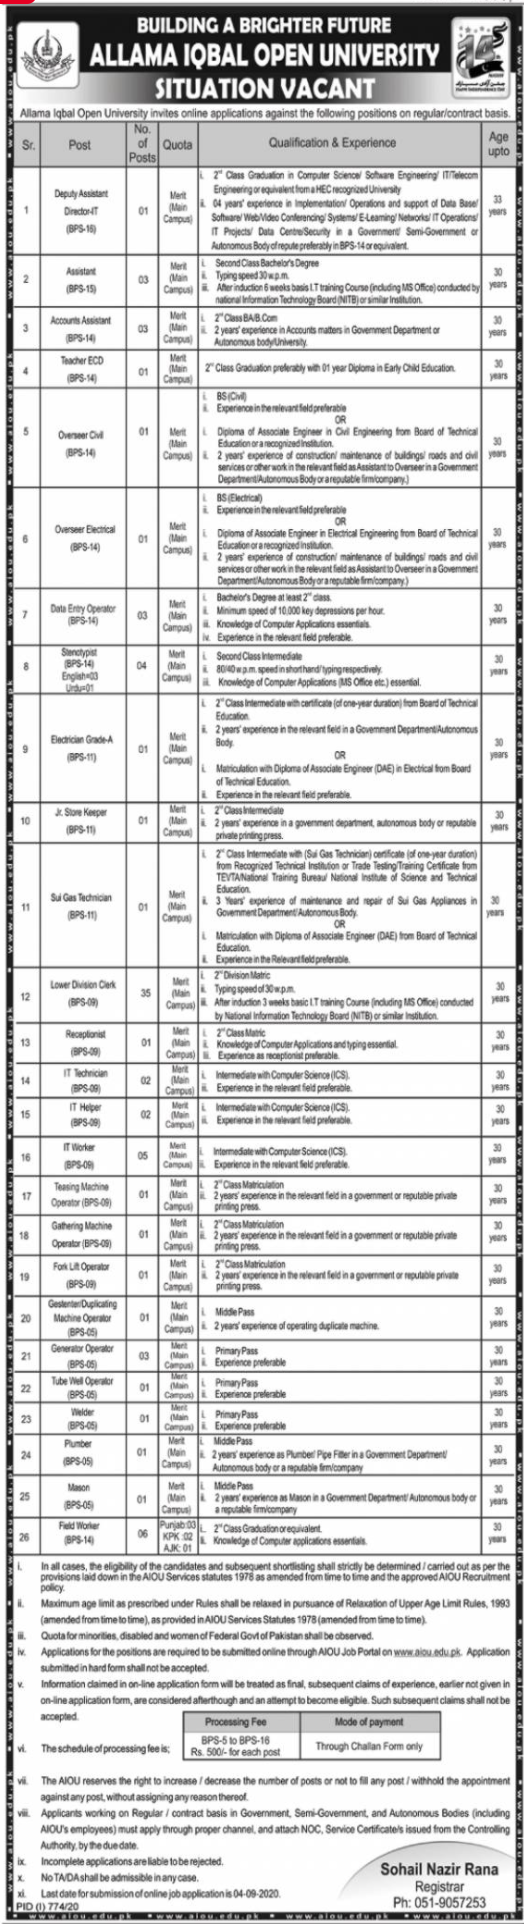 Allama Iqbal Open University AIOU Jobs